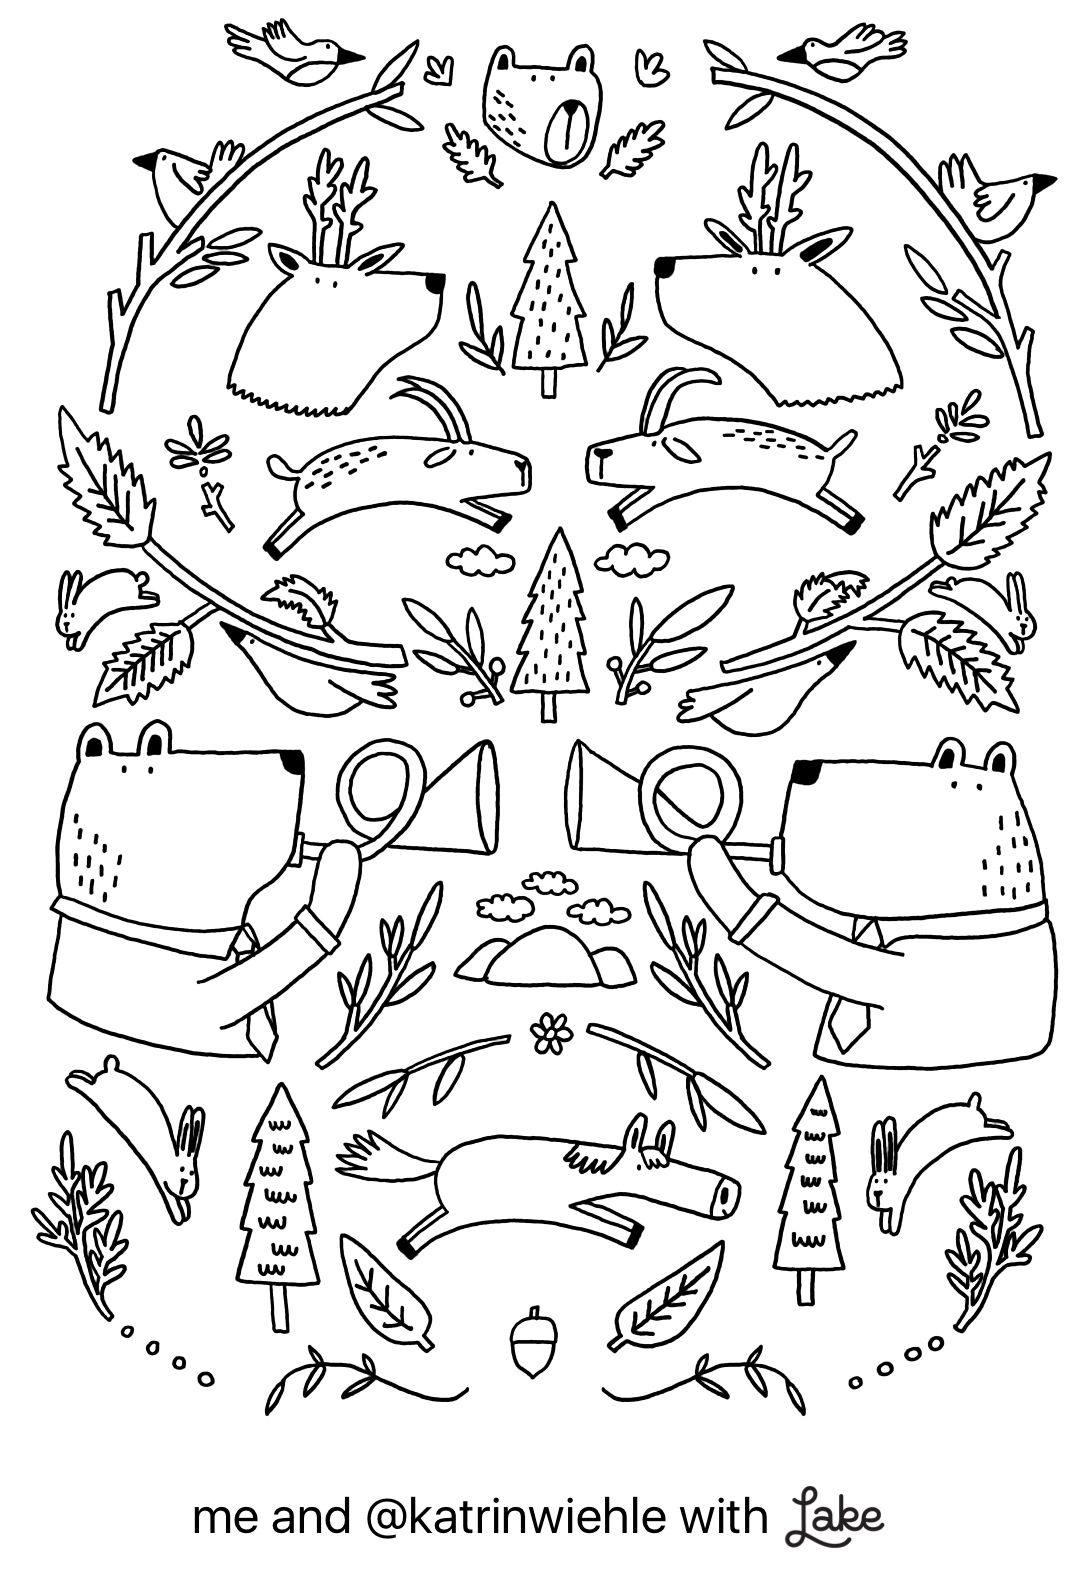 Coloring Page From Lake Coloring App Coloring Pages Coloring Apps Color